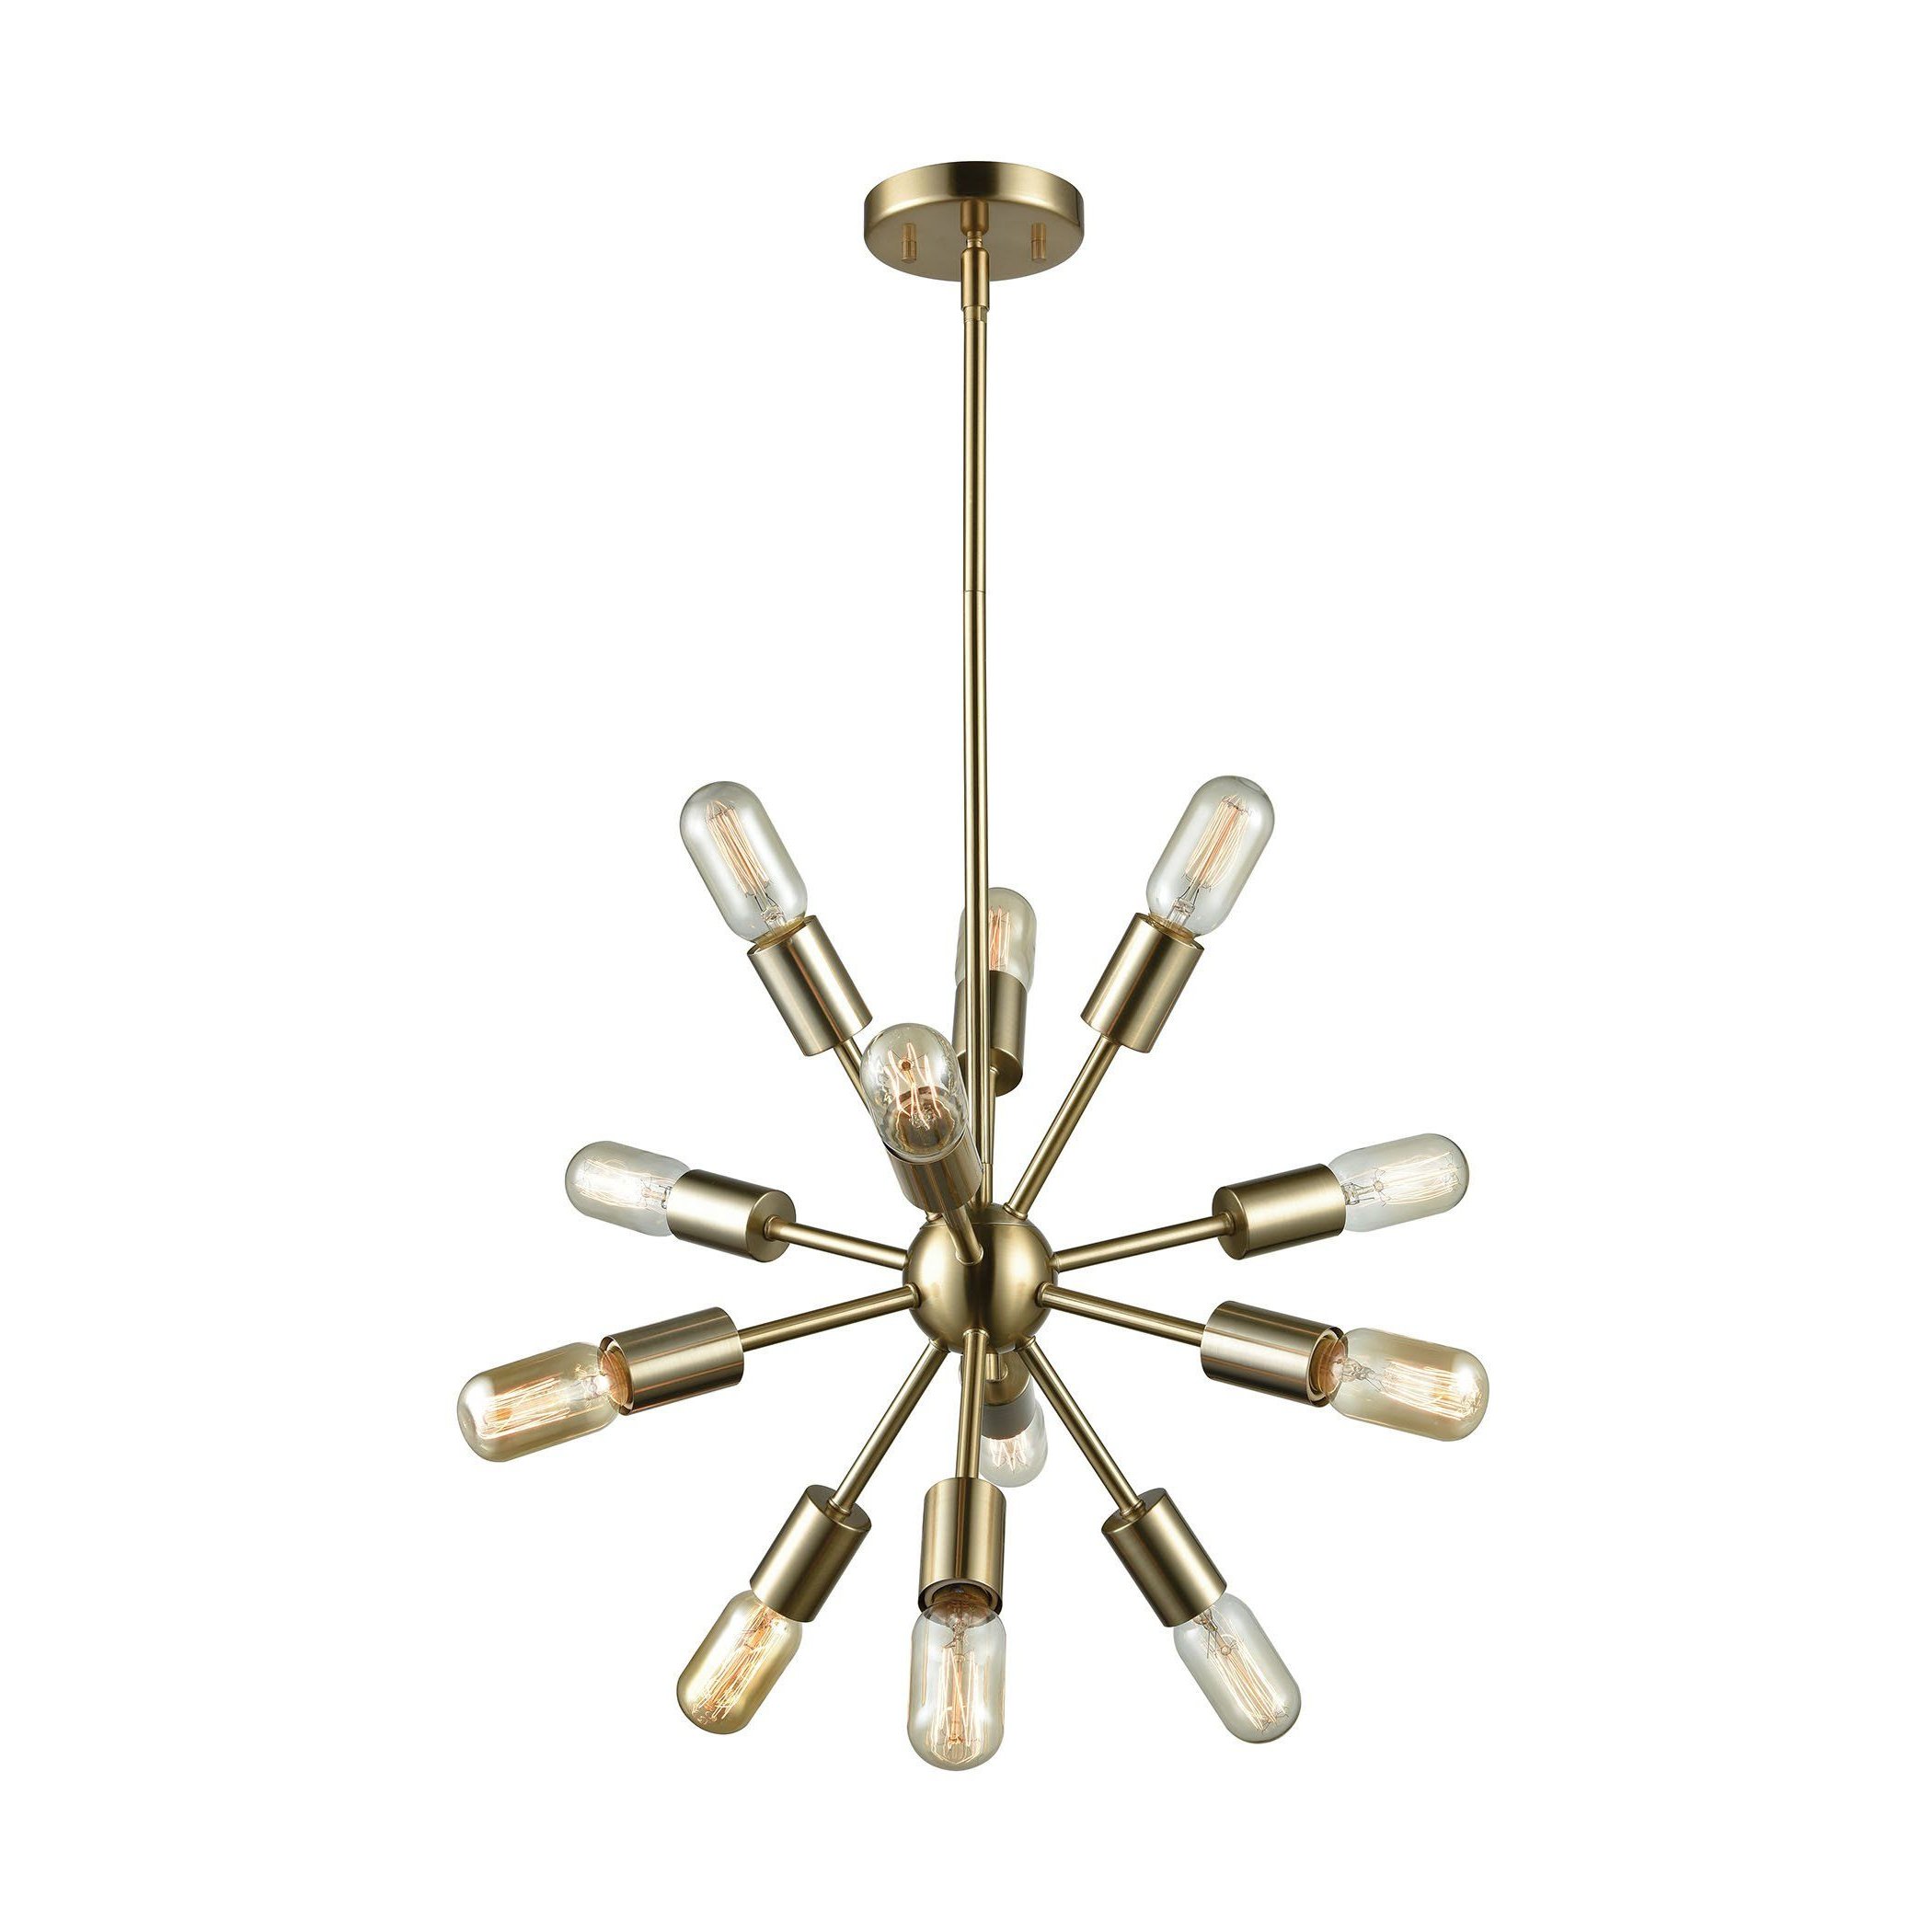 Corona 12 Light Sputnik Chandeliers Throughout Best And Newest Delphine 12 Light Chandelier In Satin Brass (View 24 of 25)